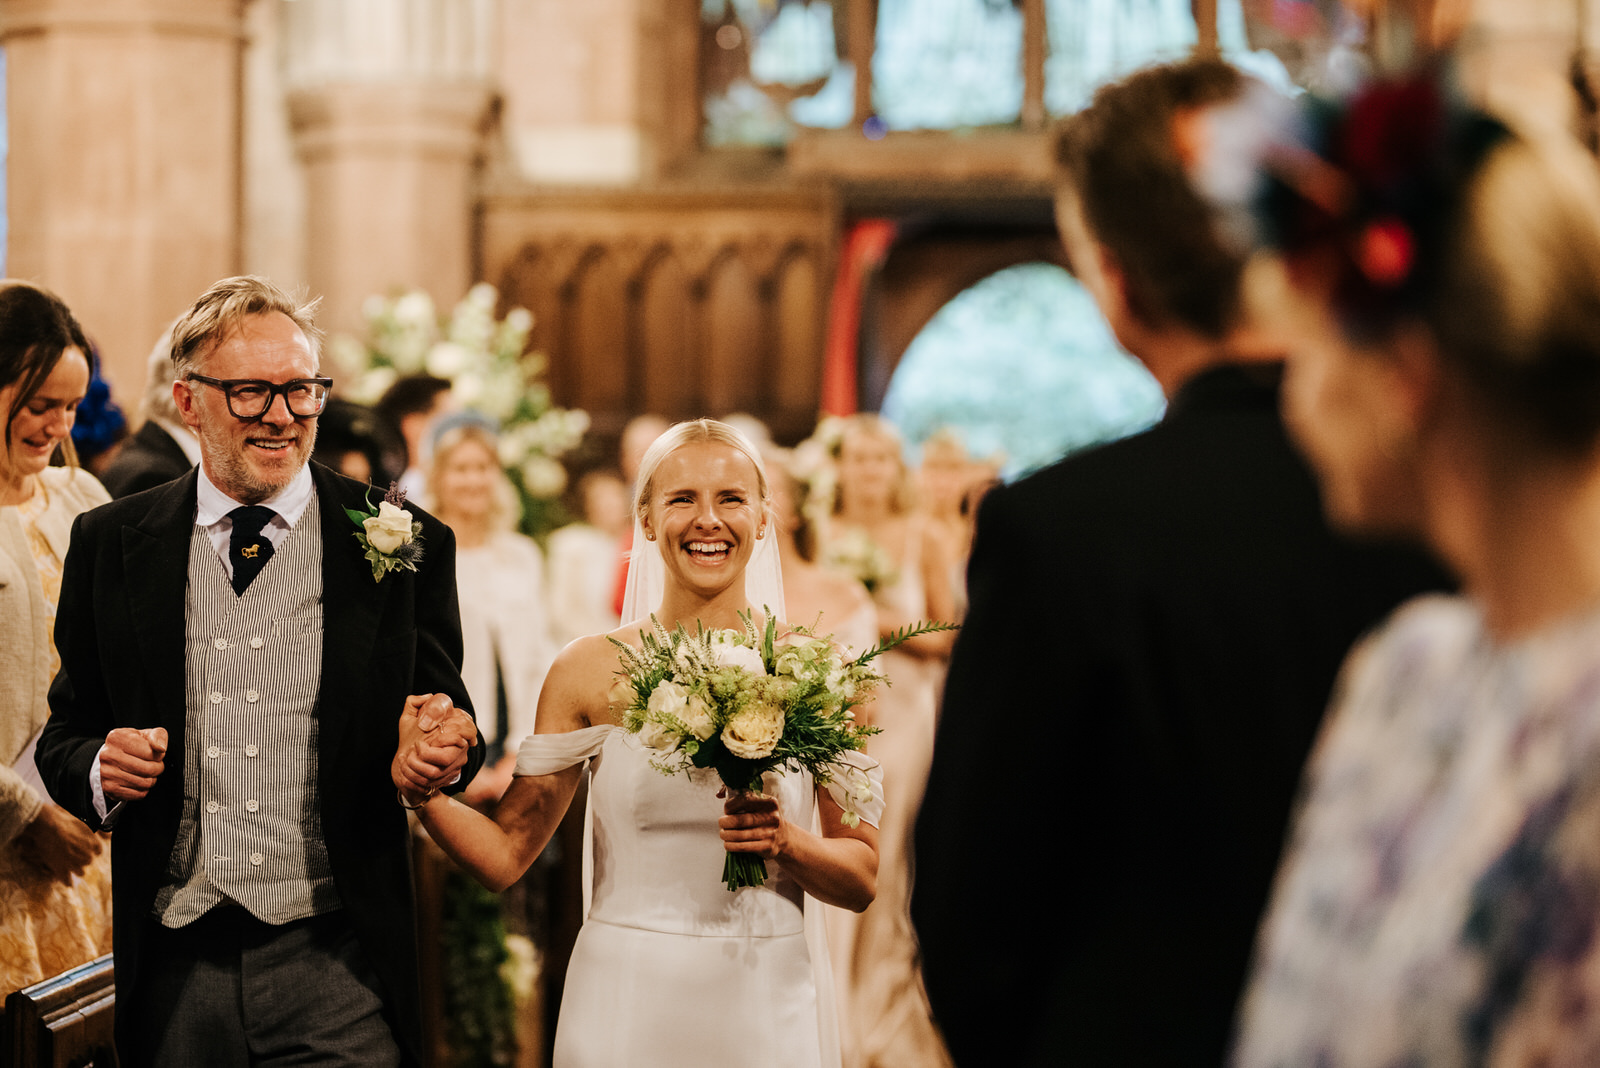 Father of the bride and bride walk down the aisle, holding hands and smiling vibrantly at Hawarden Castle Wedding